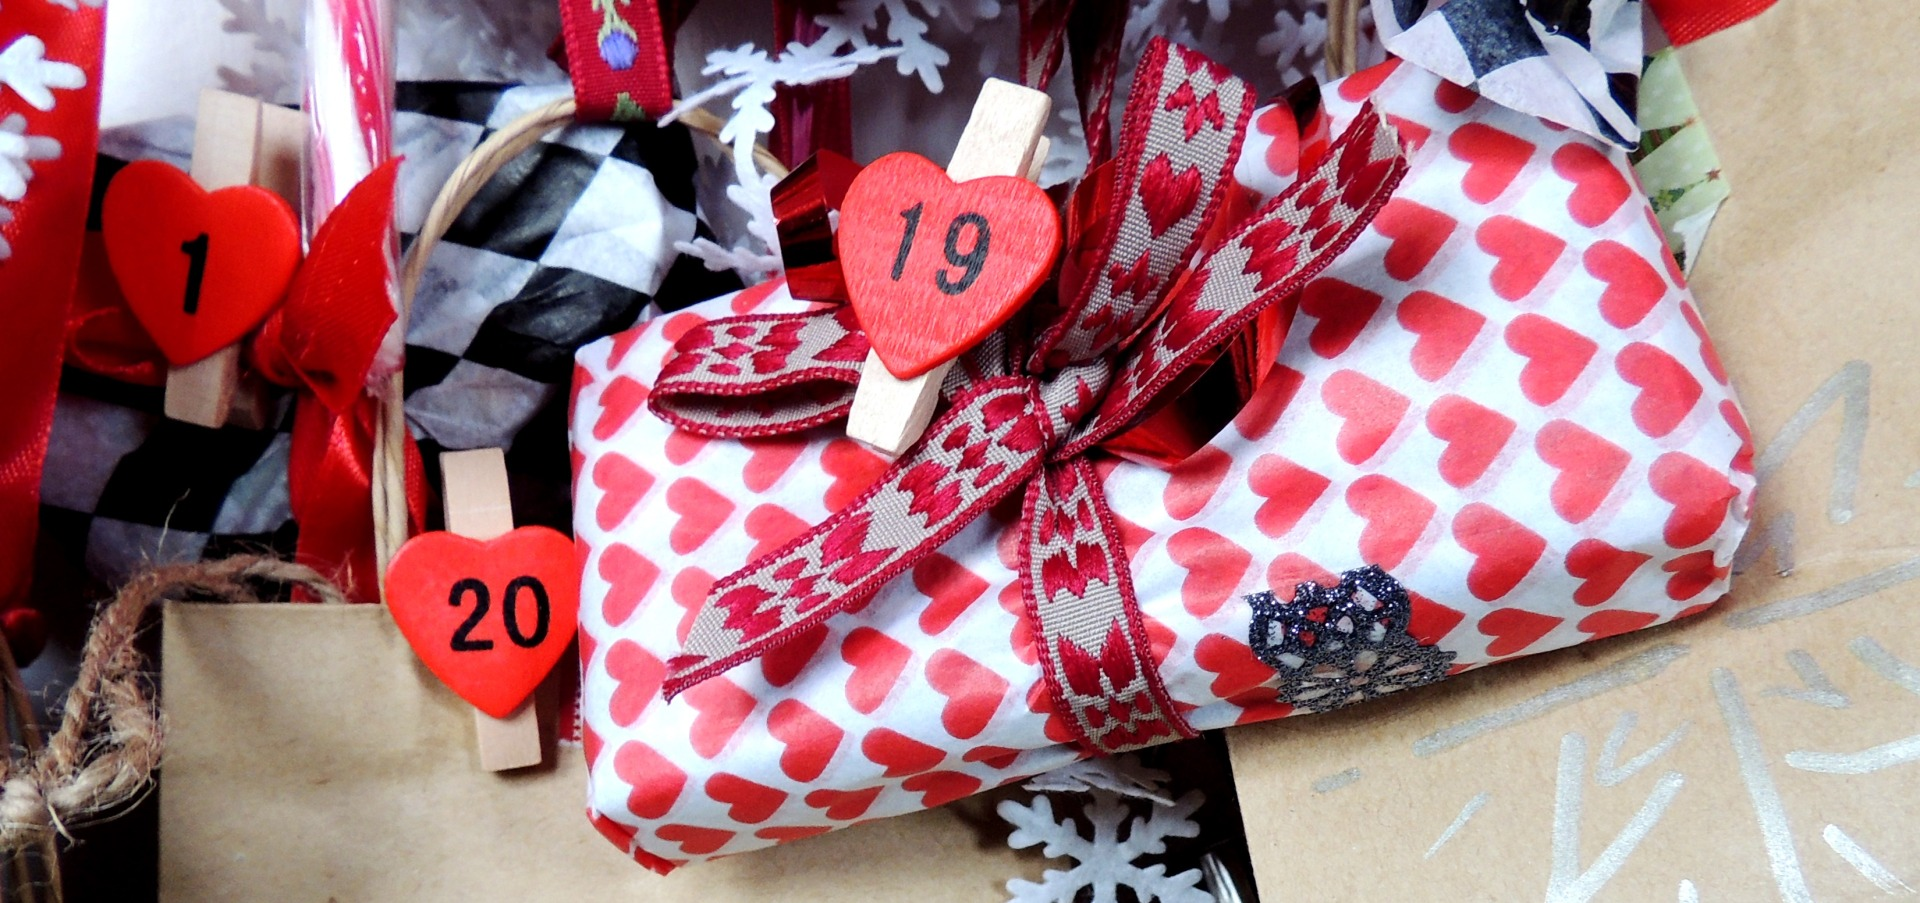 wrapped presents with numbered pegs